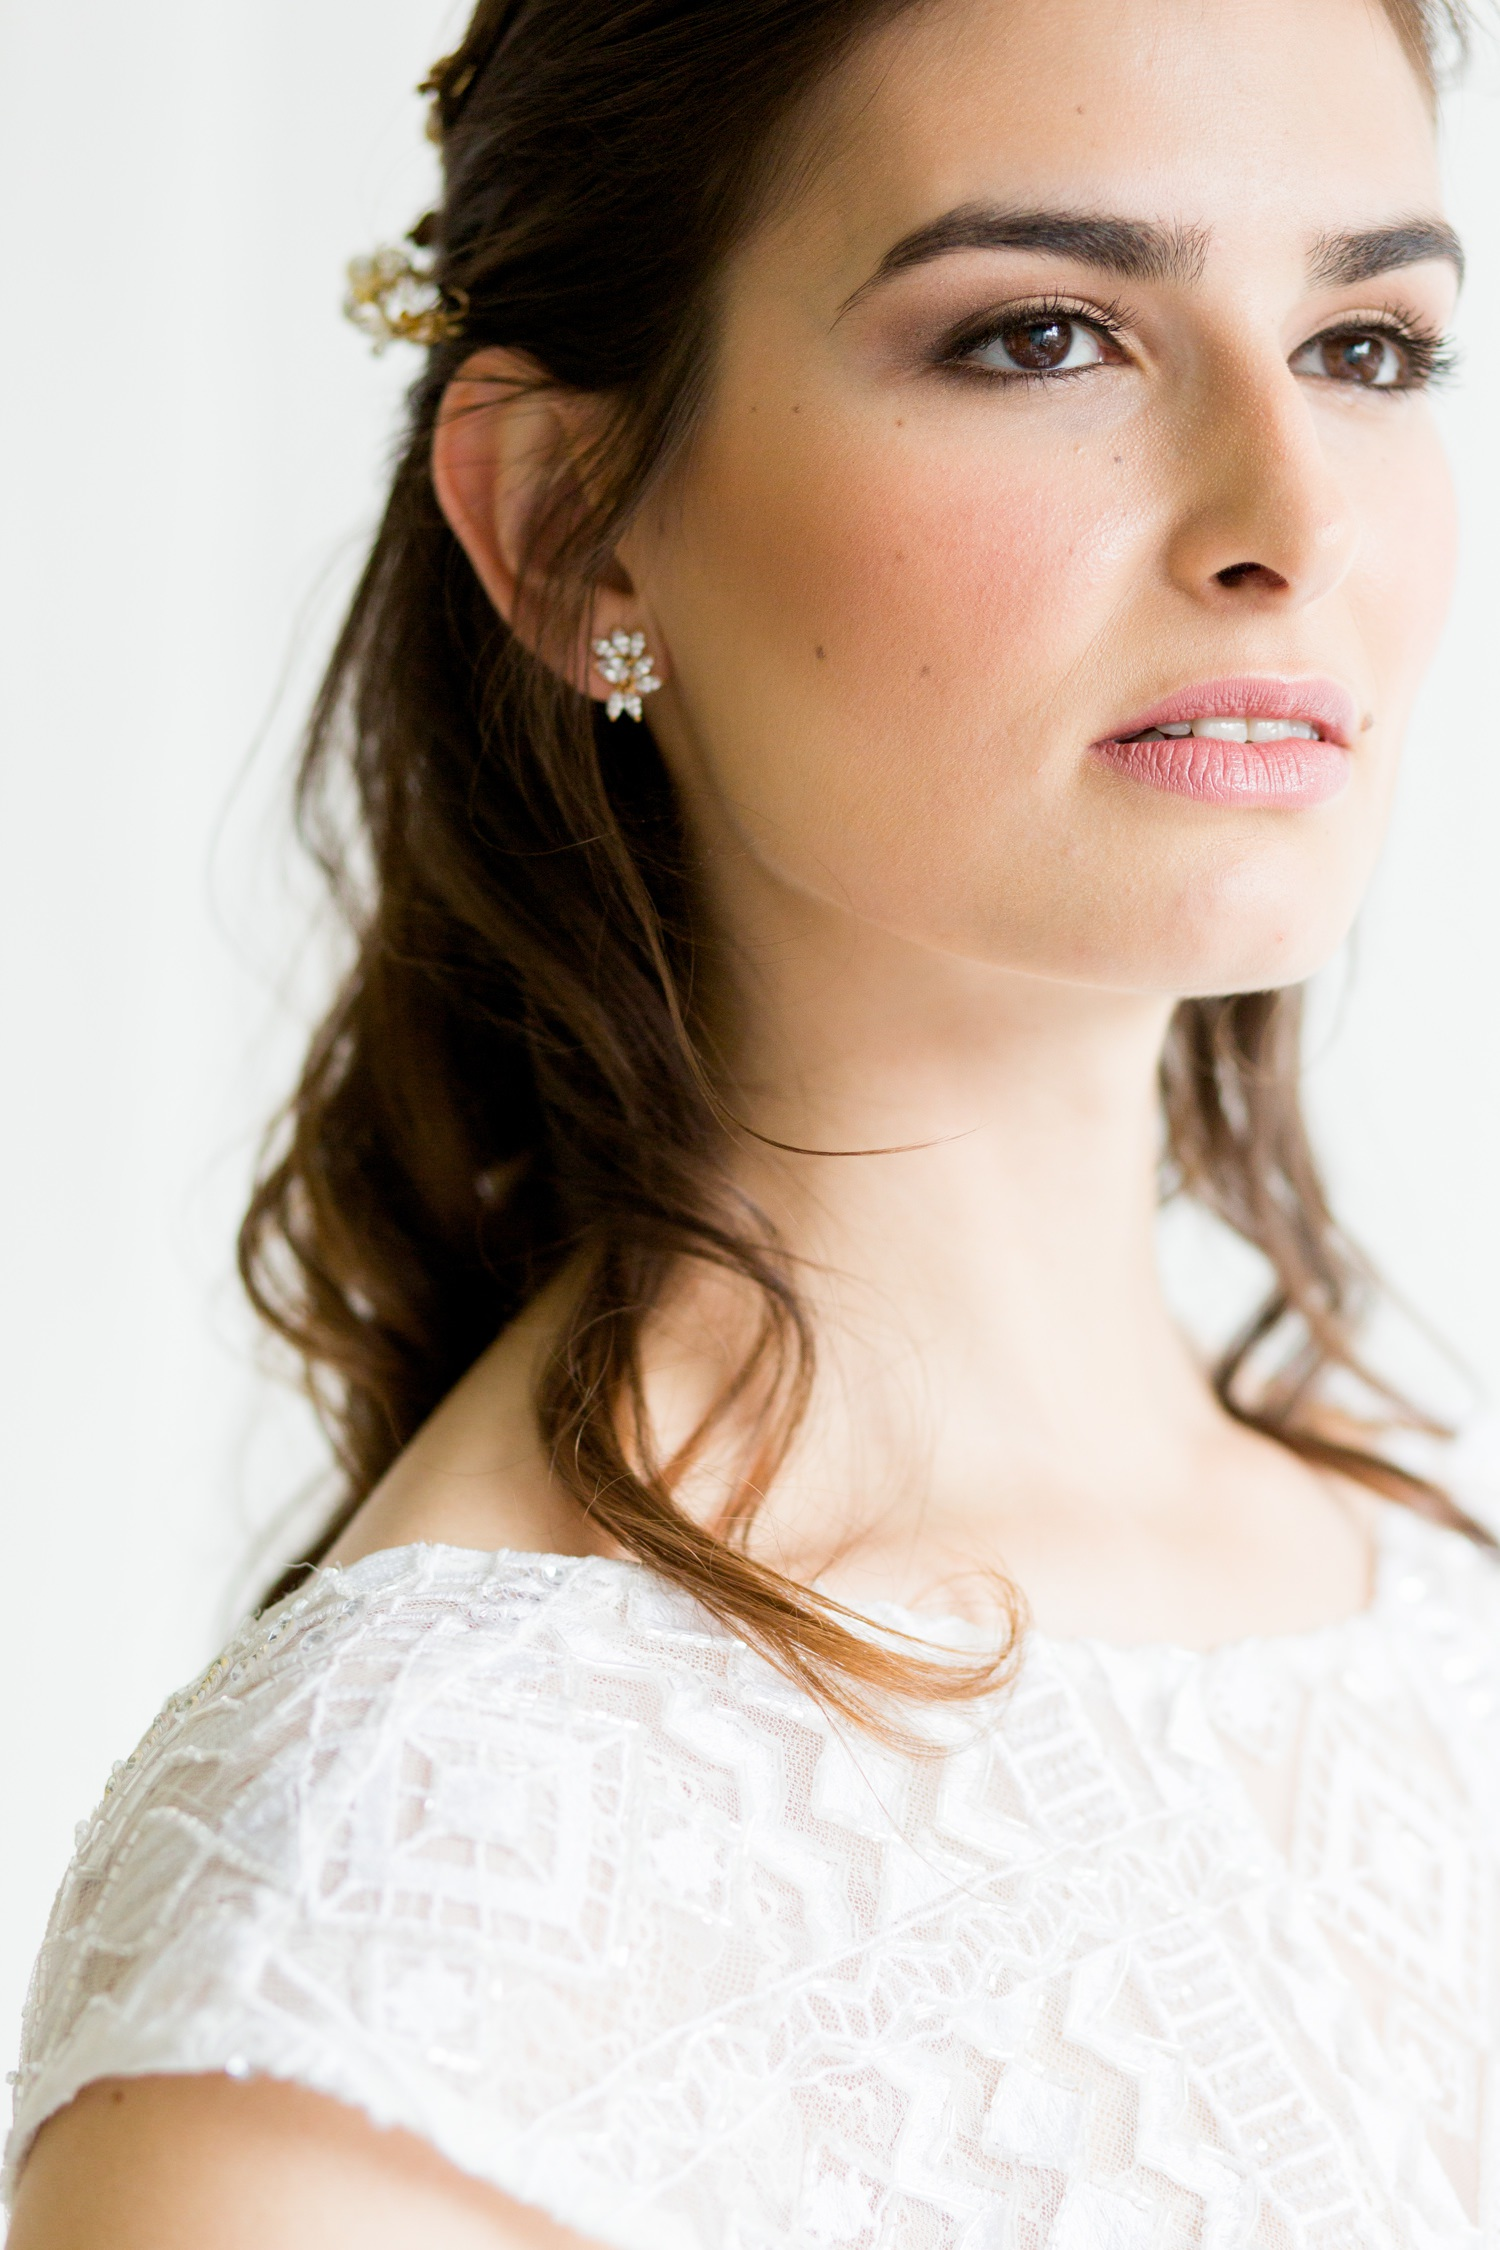 Industrial Chic Botanical Wedding 9 - flawless natural make-up on a brunette bride